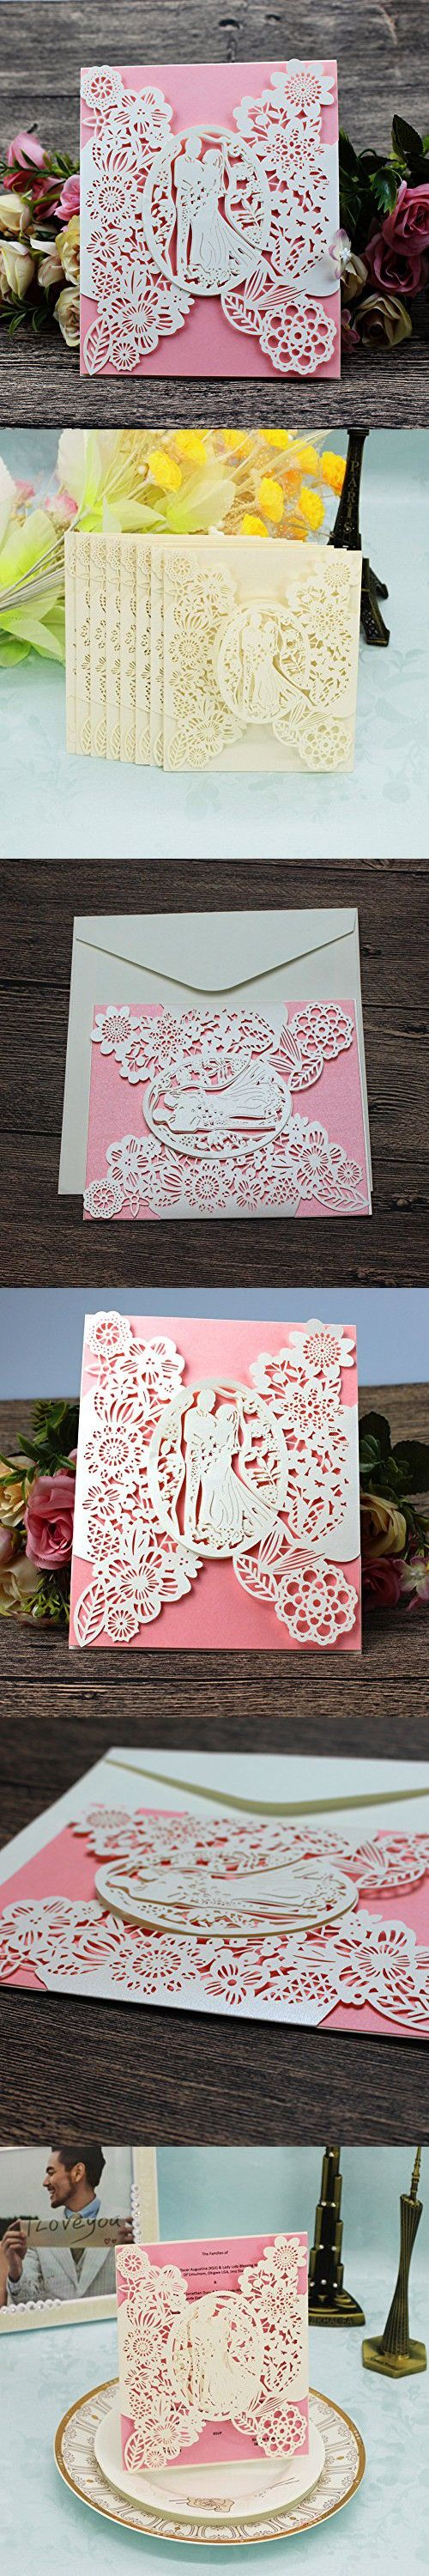 Laser Cut Wedding Invitations 40 pack FOMTOR